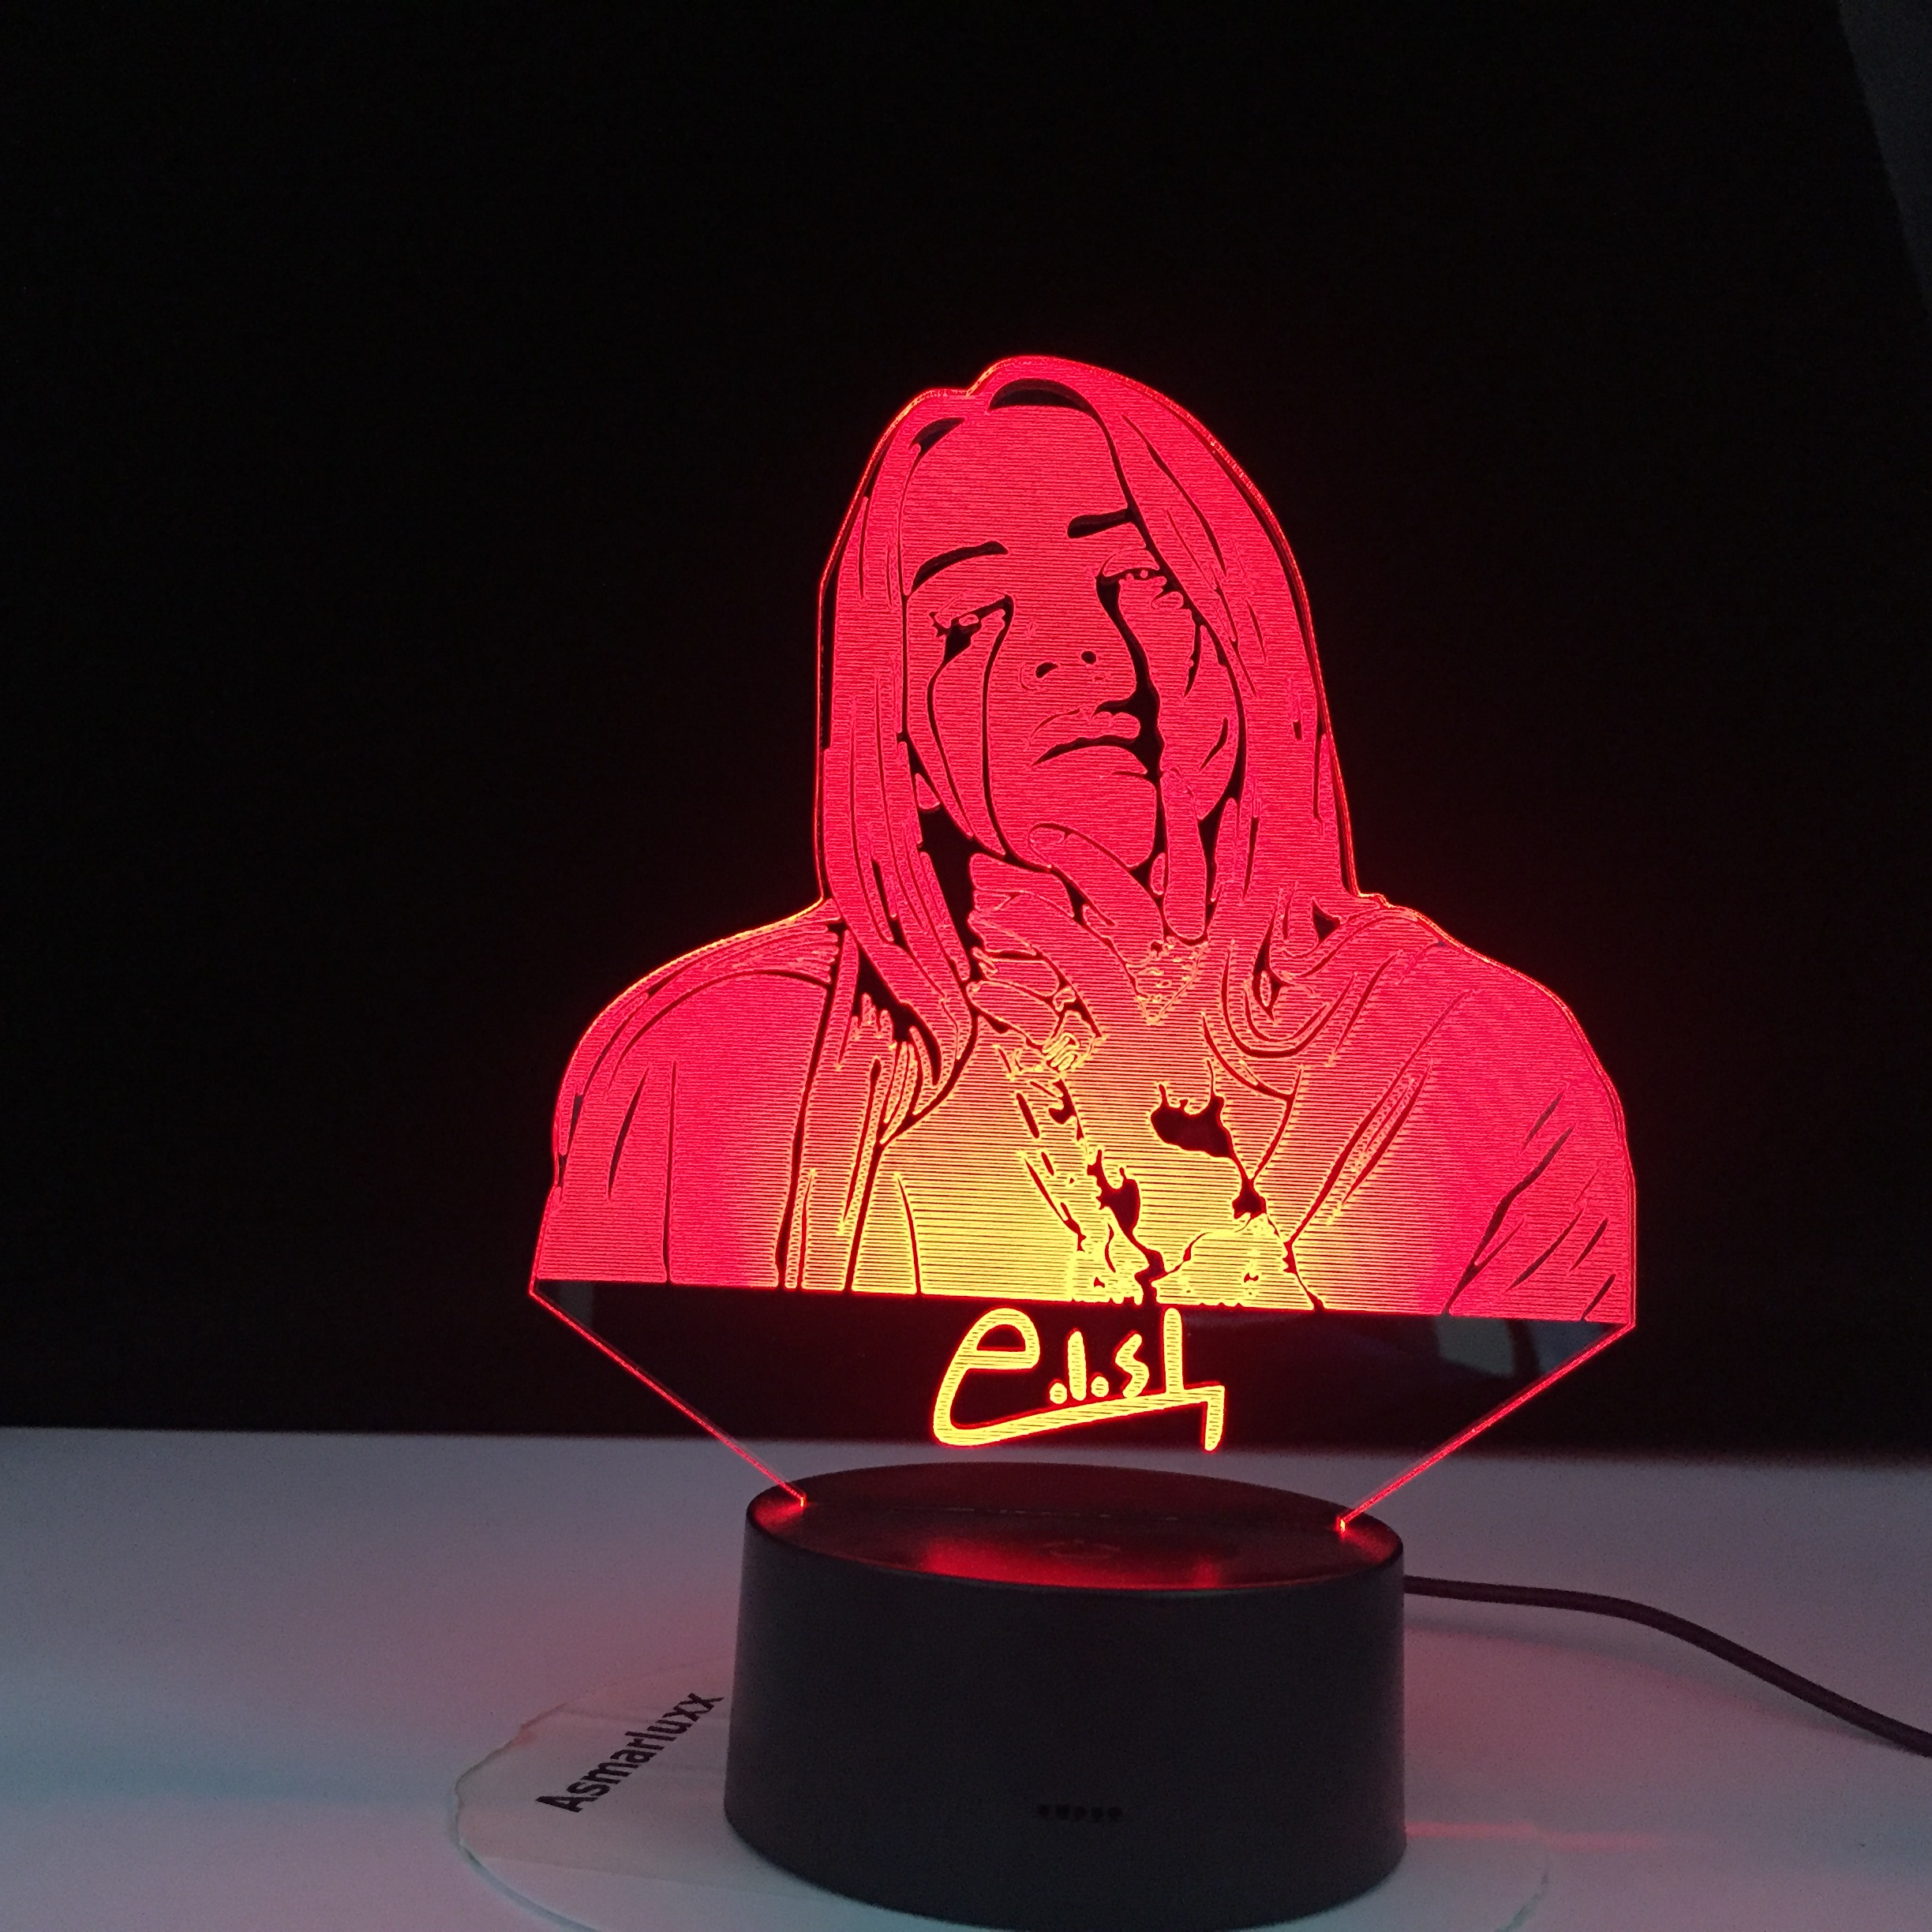 Billie Eilish Figure American Singer Songwriter Led Night Light Fans Gift Office Home Decorative Nightlight Bedroom Bedside Lamp